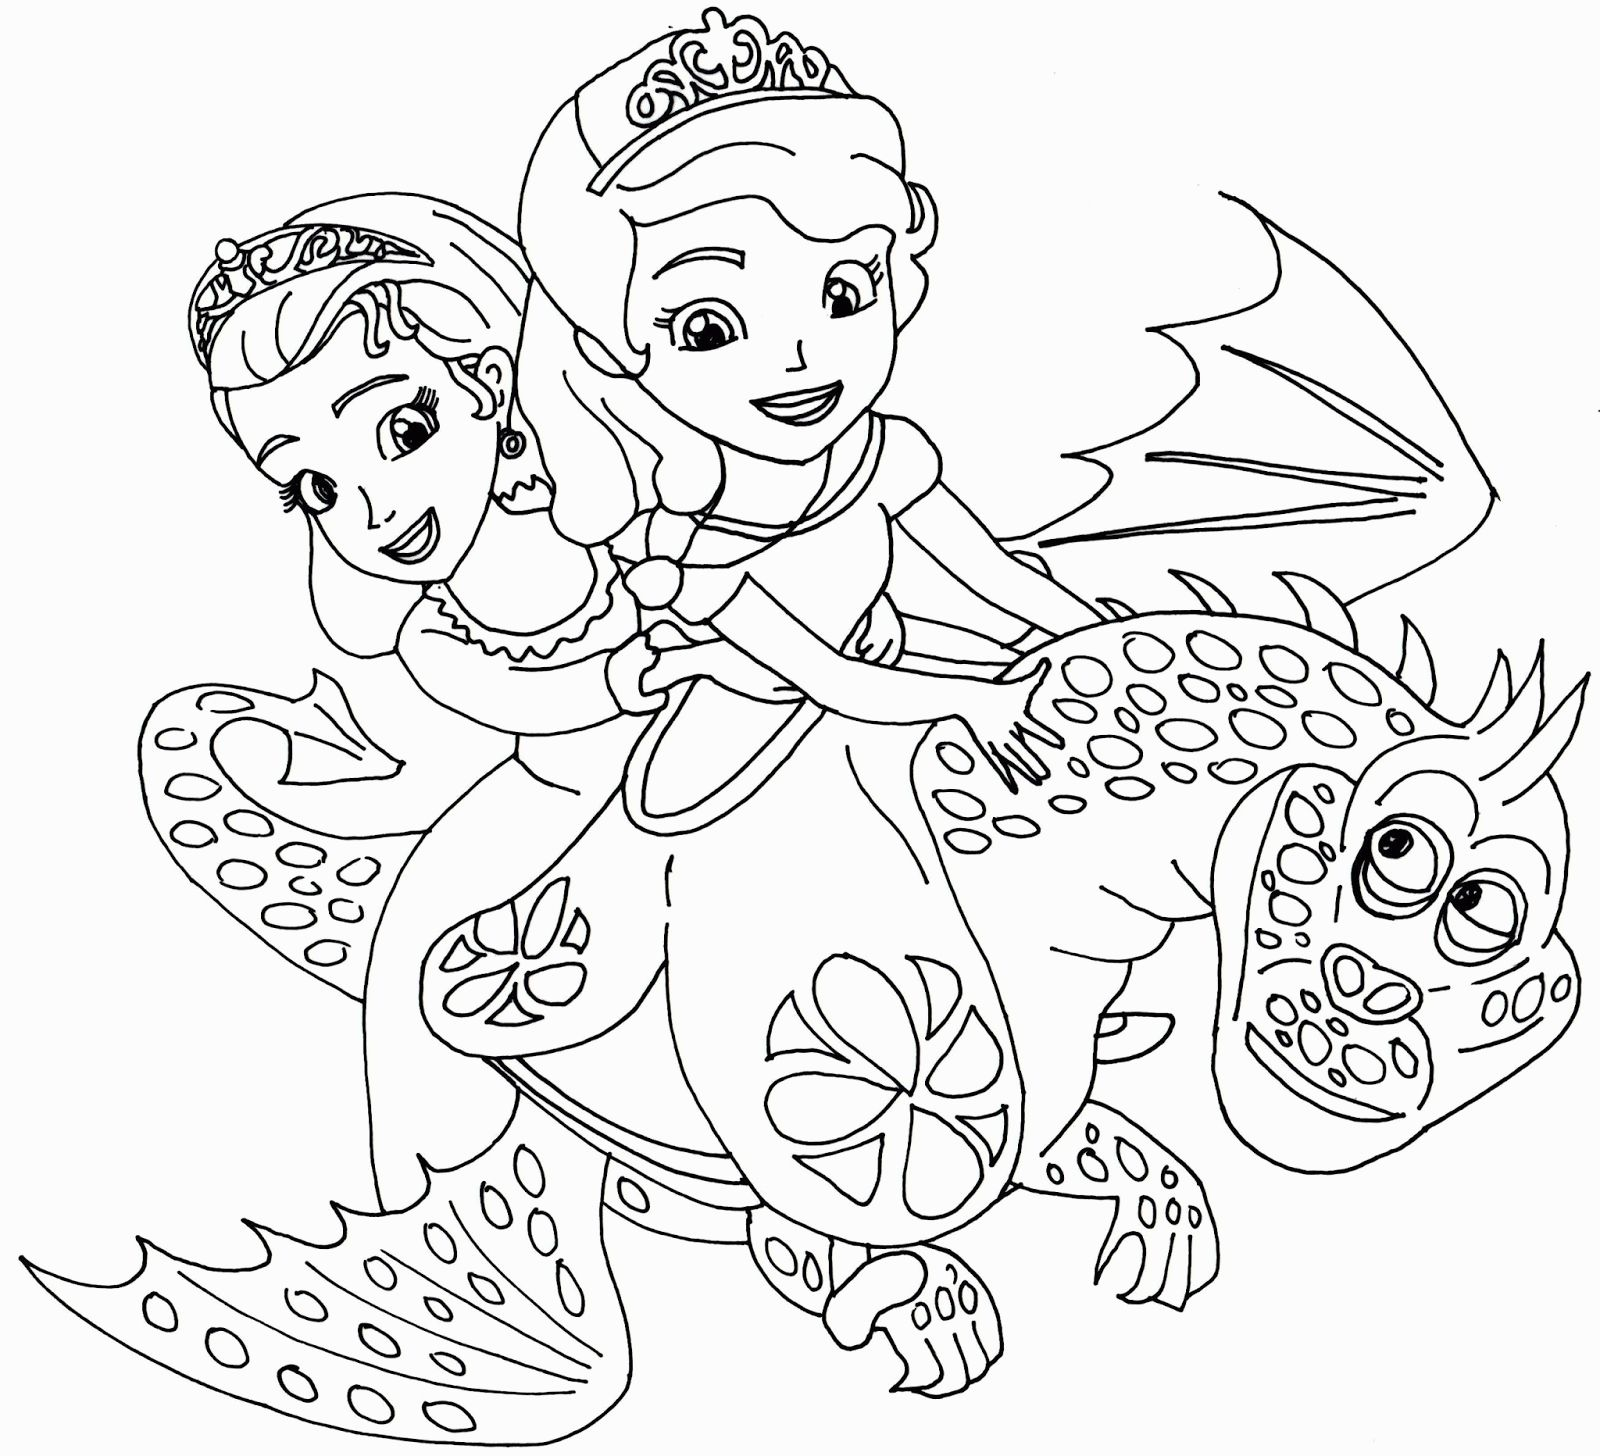 Amber Sofia The First Coloring Pages Printable Princess Coloring Pages Mermaid Coloring Pages Disney Coloring Pages